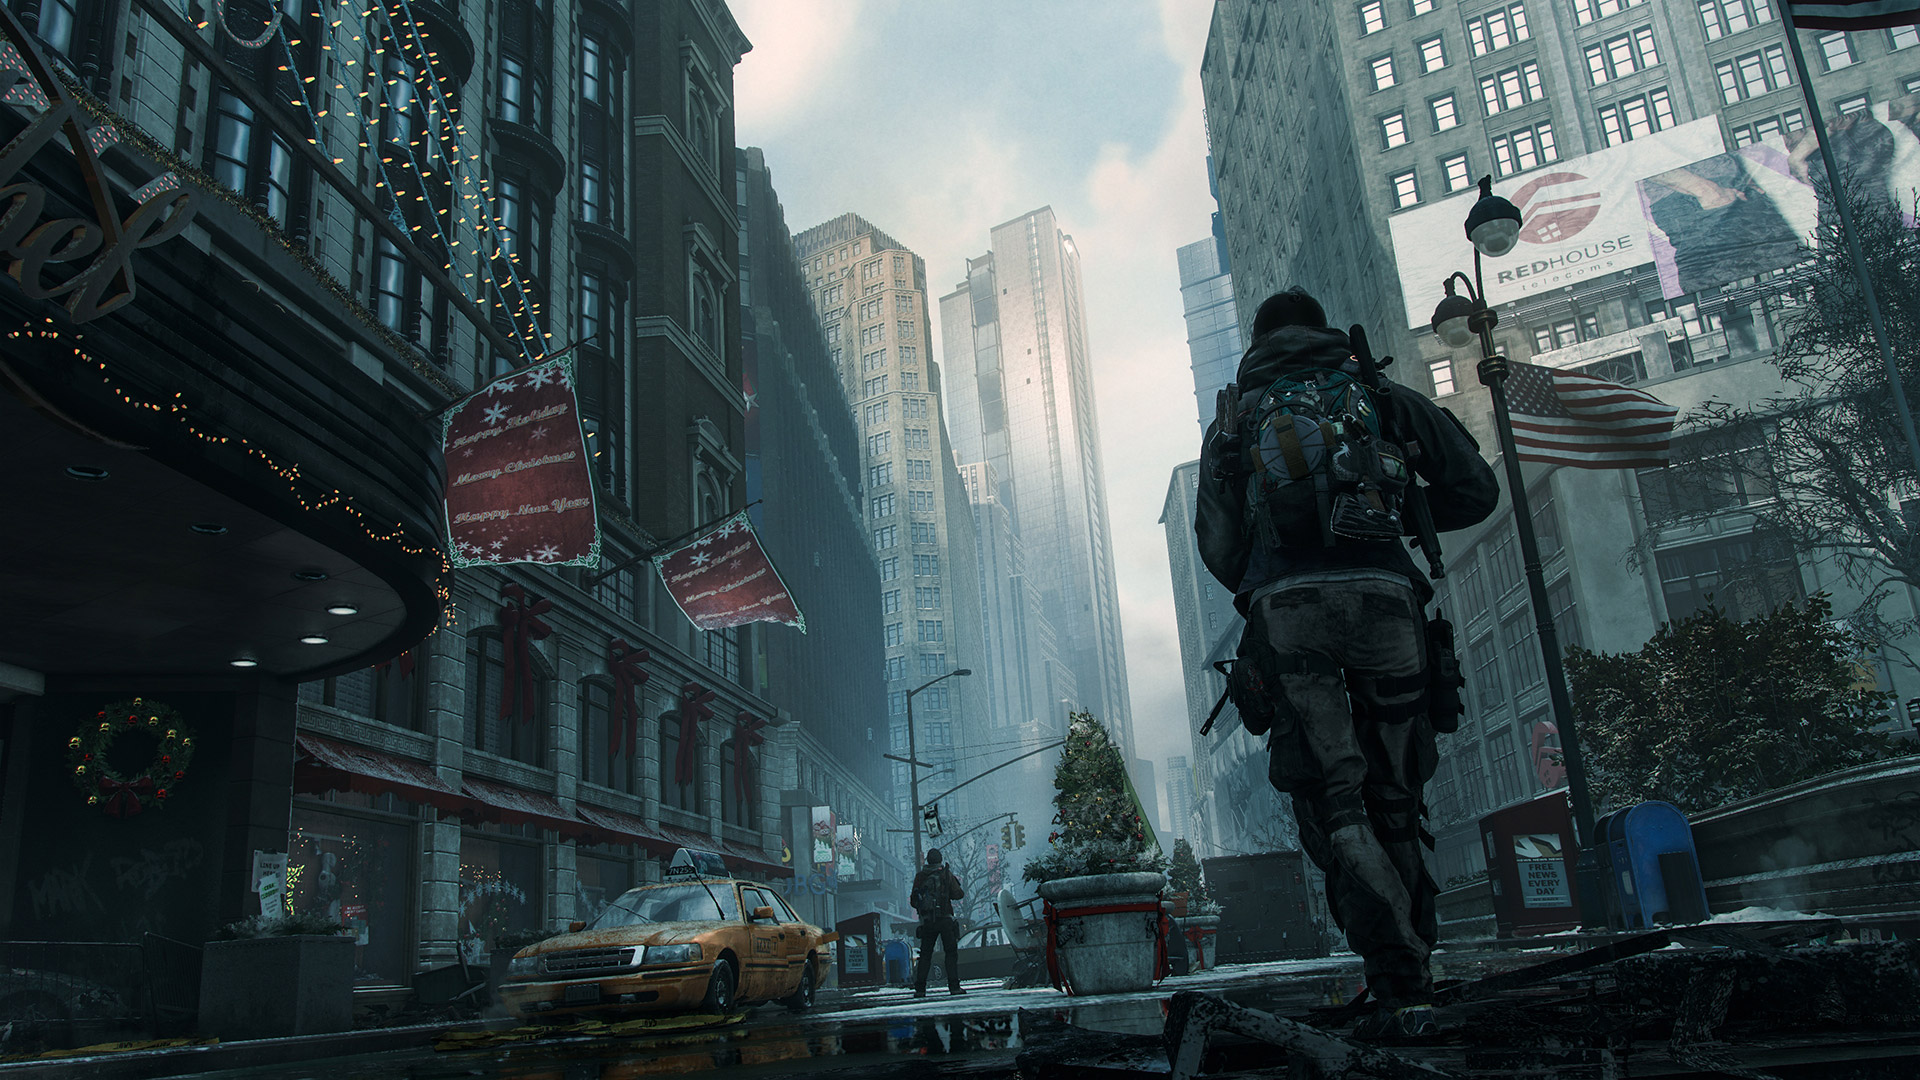 Ubisoft delays The Division expansions to improve 'core gameplay experience'